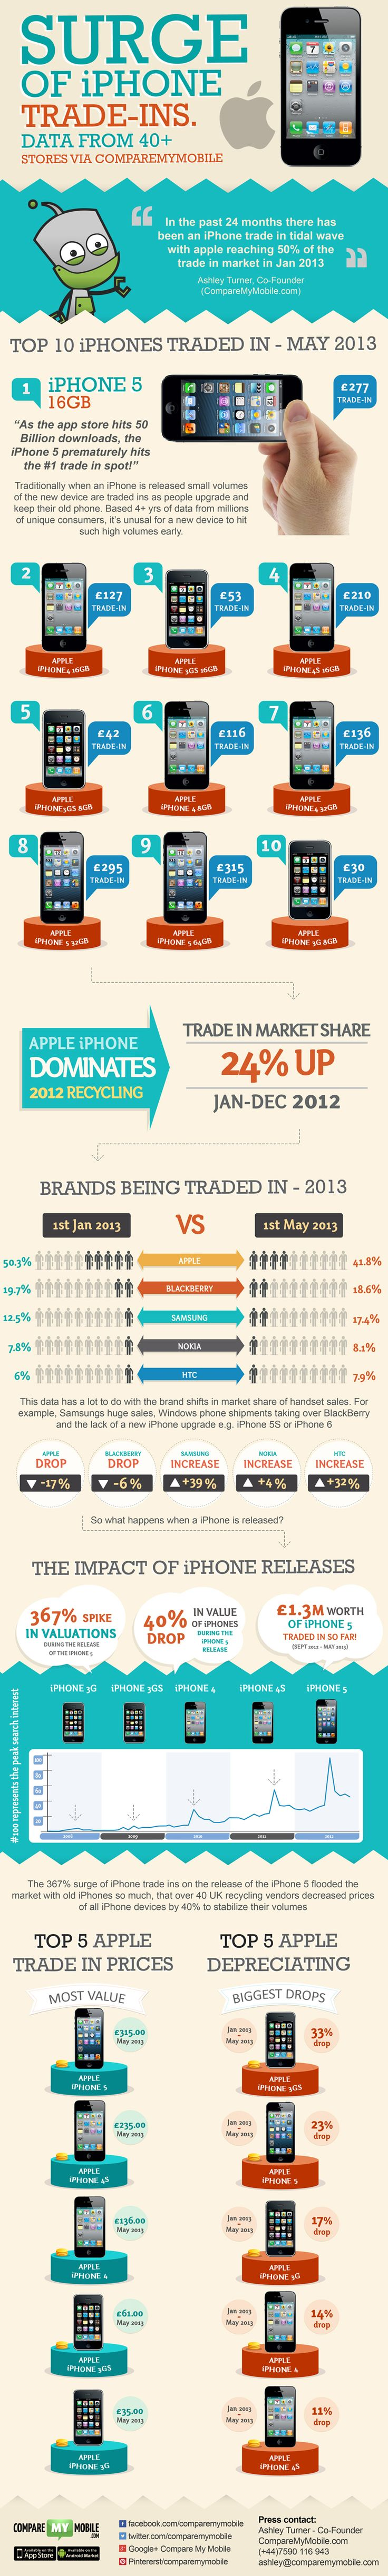 Apple recycling trade in trends of 2013, the most popular apple products recycled, what loses value and what holds it well in 2013: http://www.comparemymobile.com/infographics  #infographic #tech #mobile #gadgets #iPhone  #phone #smartphone #recycle #recycling